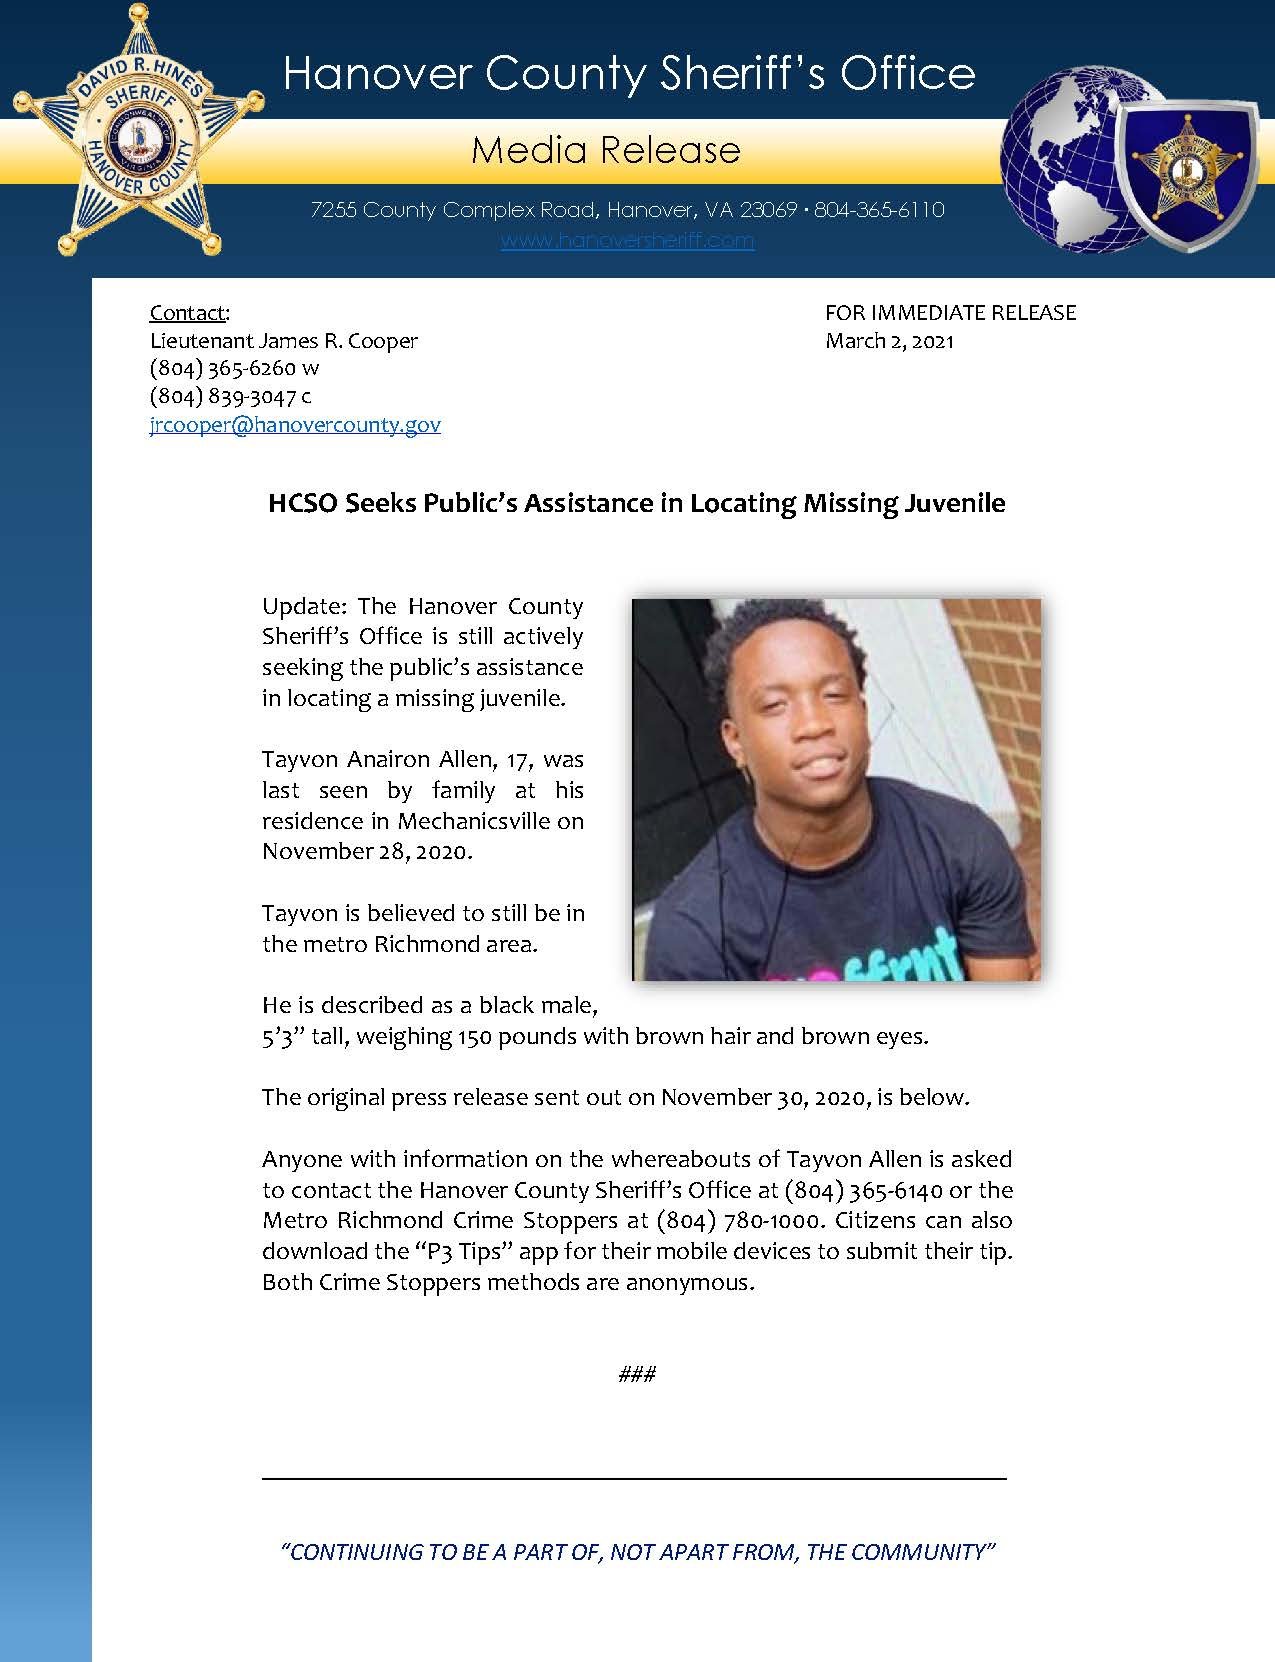 HCSO Media Release - UPDATE HCSO Seeks Publics Assistance in Locating Missing Juvenile 3.2.21 Page1